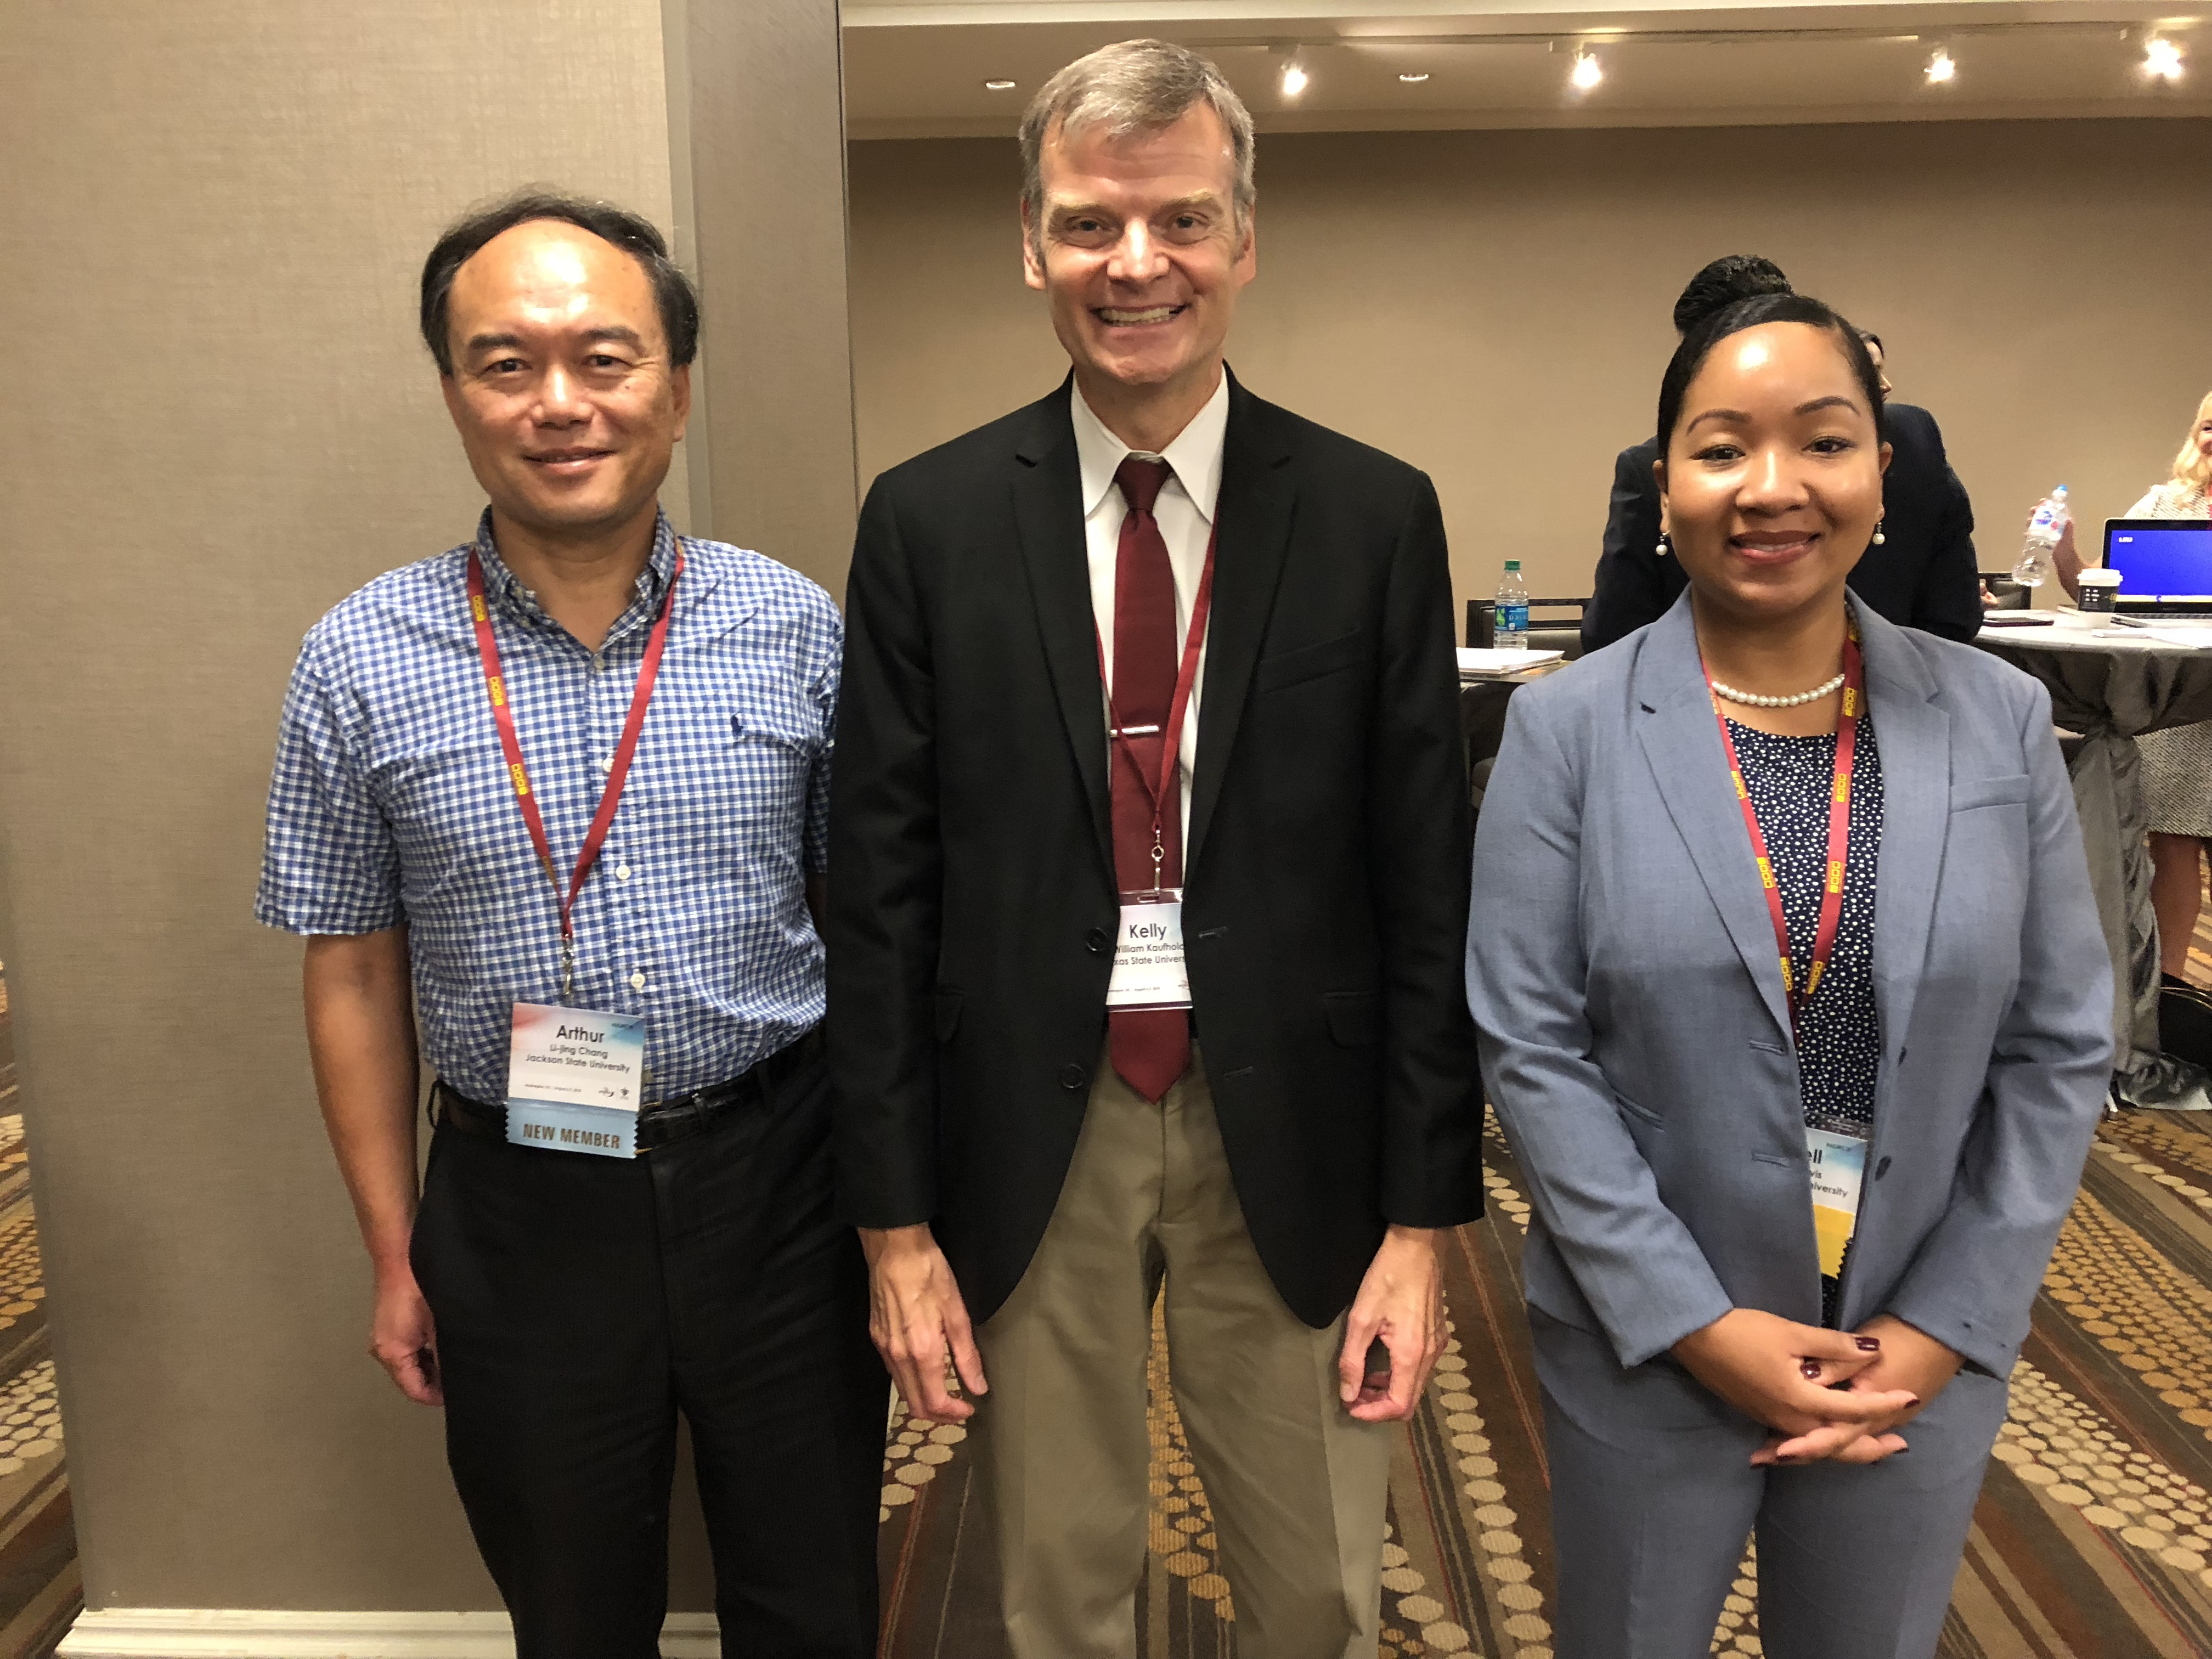 Jewell Davis, JSU alum, who was selected to present her graduate research at the Association for Education in Journalism and Mass Communications Conference is pictured with Dr. Li-jing Arthur Chang(l), assistant professor at JSU; and Dr. Kelly Kaufhold of Texas State University who served as session moderator. (Photo special to JSU)